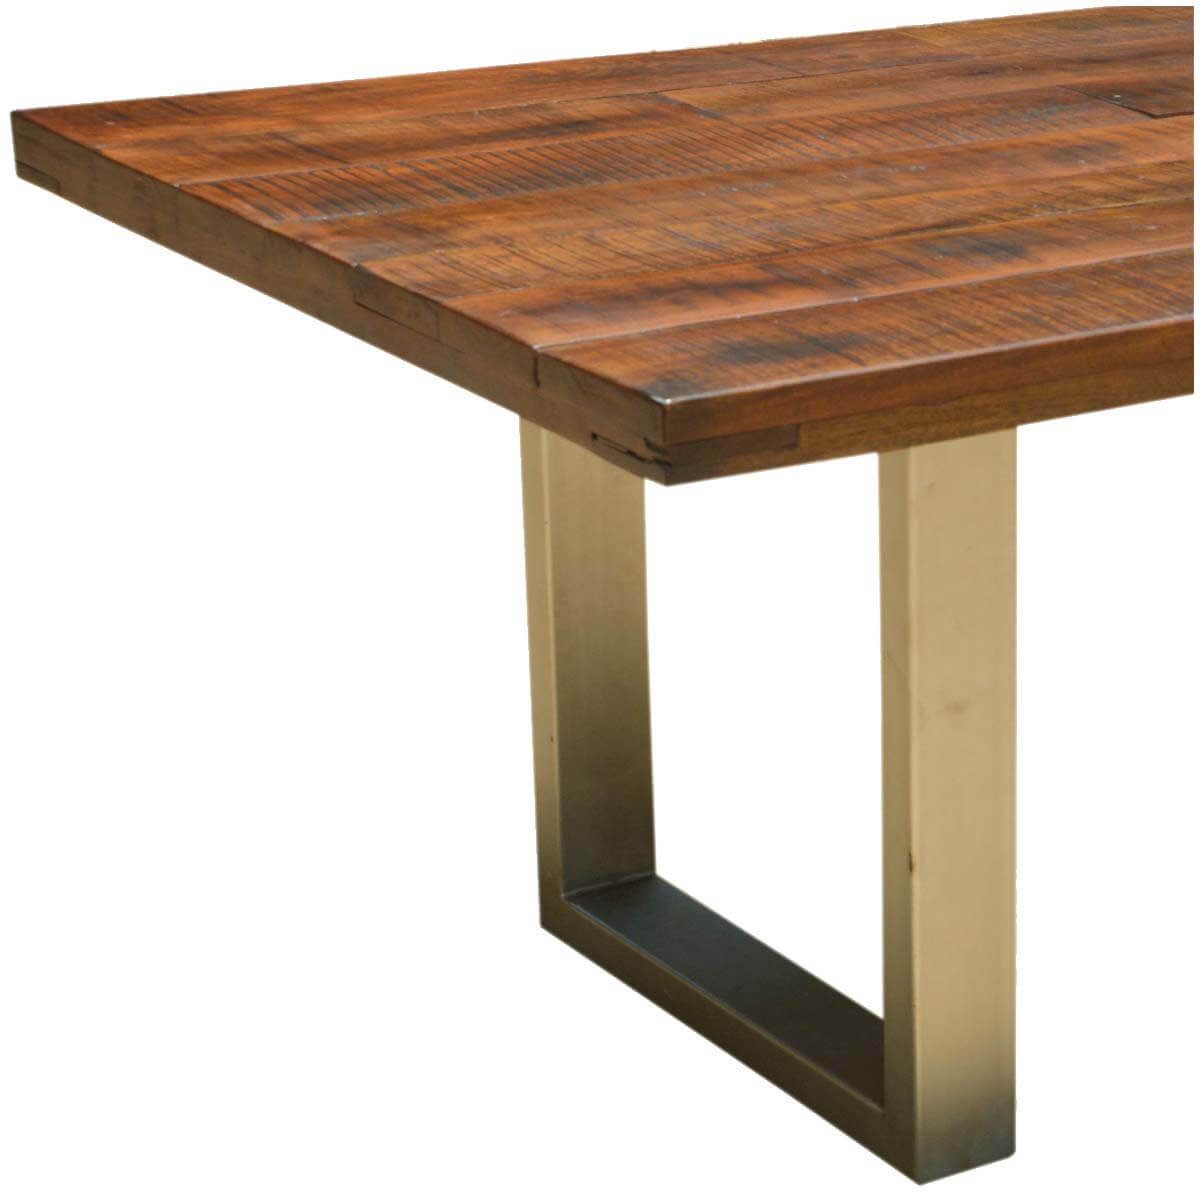 acacia lyon large contemporary rustic solid acacia wood dining table